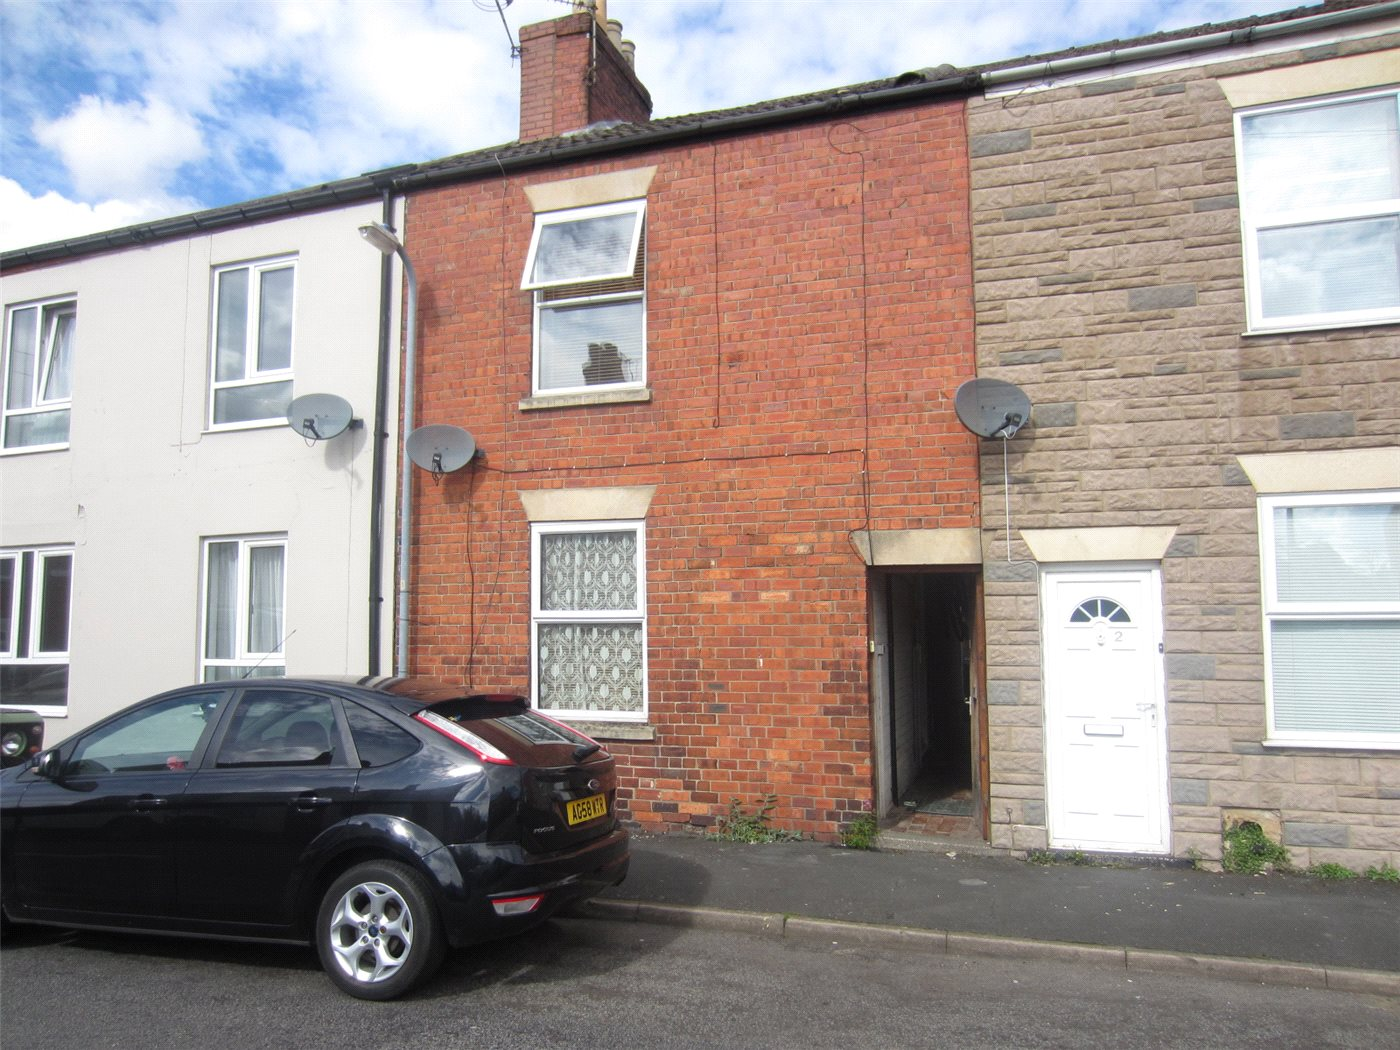 2 Bedrooms Terraced House for sale in Bridge Street, Grantham, NG31